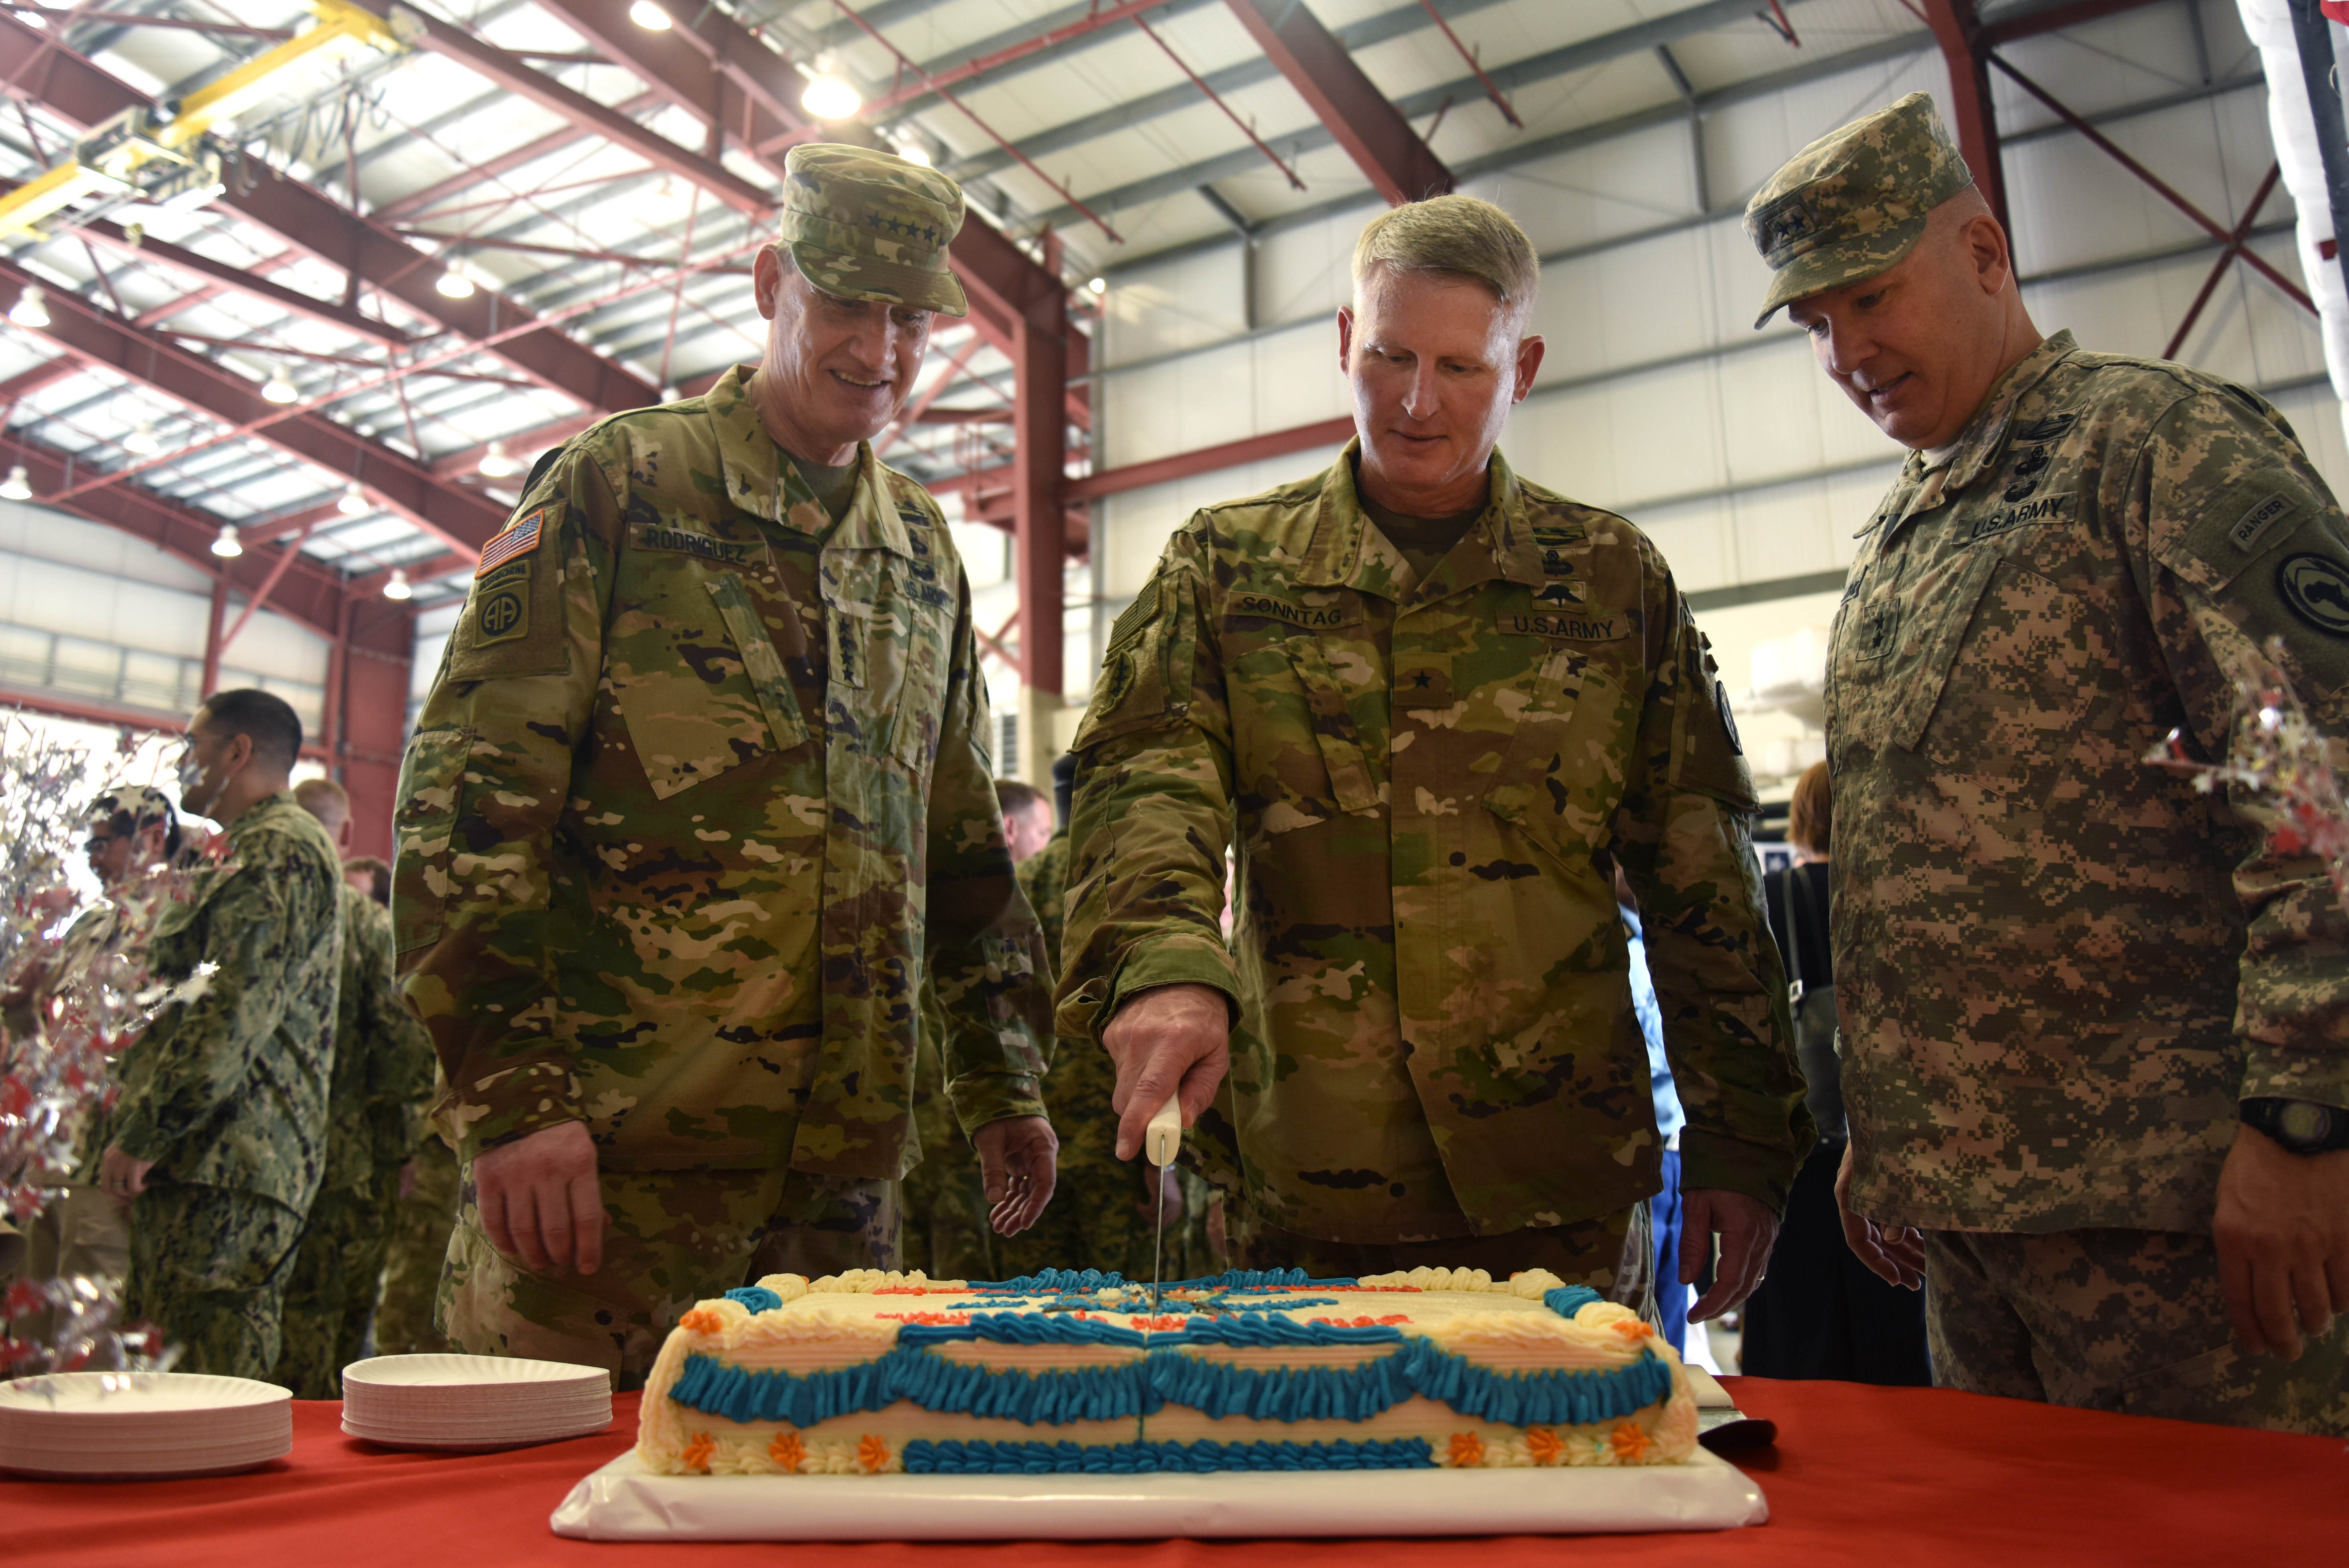 (From the left) U.S. Army Gen. David M. Rodriguez, U.S. Africa Command commanding general, Brig. Gen. Kurt Sonntag, new Combined Joint Task Force-Horn of Africa commanding general, and Maj. General Mark Stammer, departing CJTF-HOA commanding general, cut a cake during a change of command ceremony post-reception April 13, 2016, at Camp Lemonnier, Djibouti. Service members, diplomats and multi-national guests attended the ceremony and met the new commander. (U.S. Air Force photo by Staff Sgt. Kate Thornton)